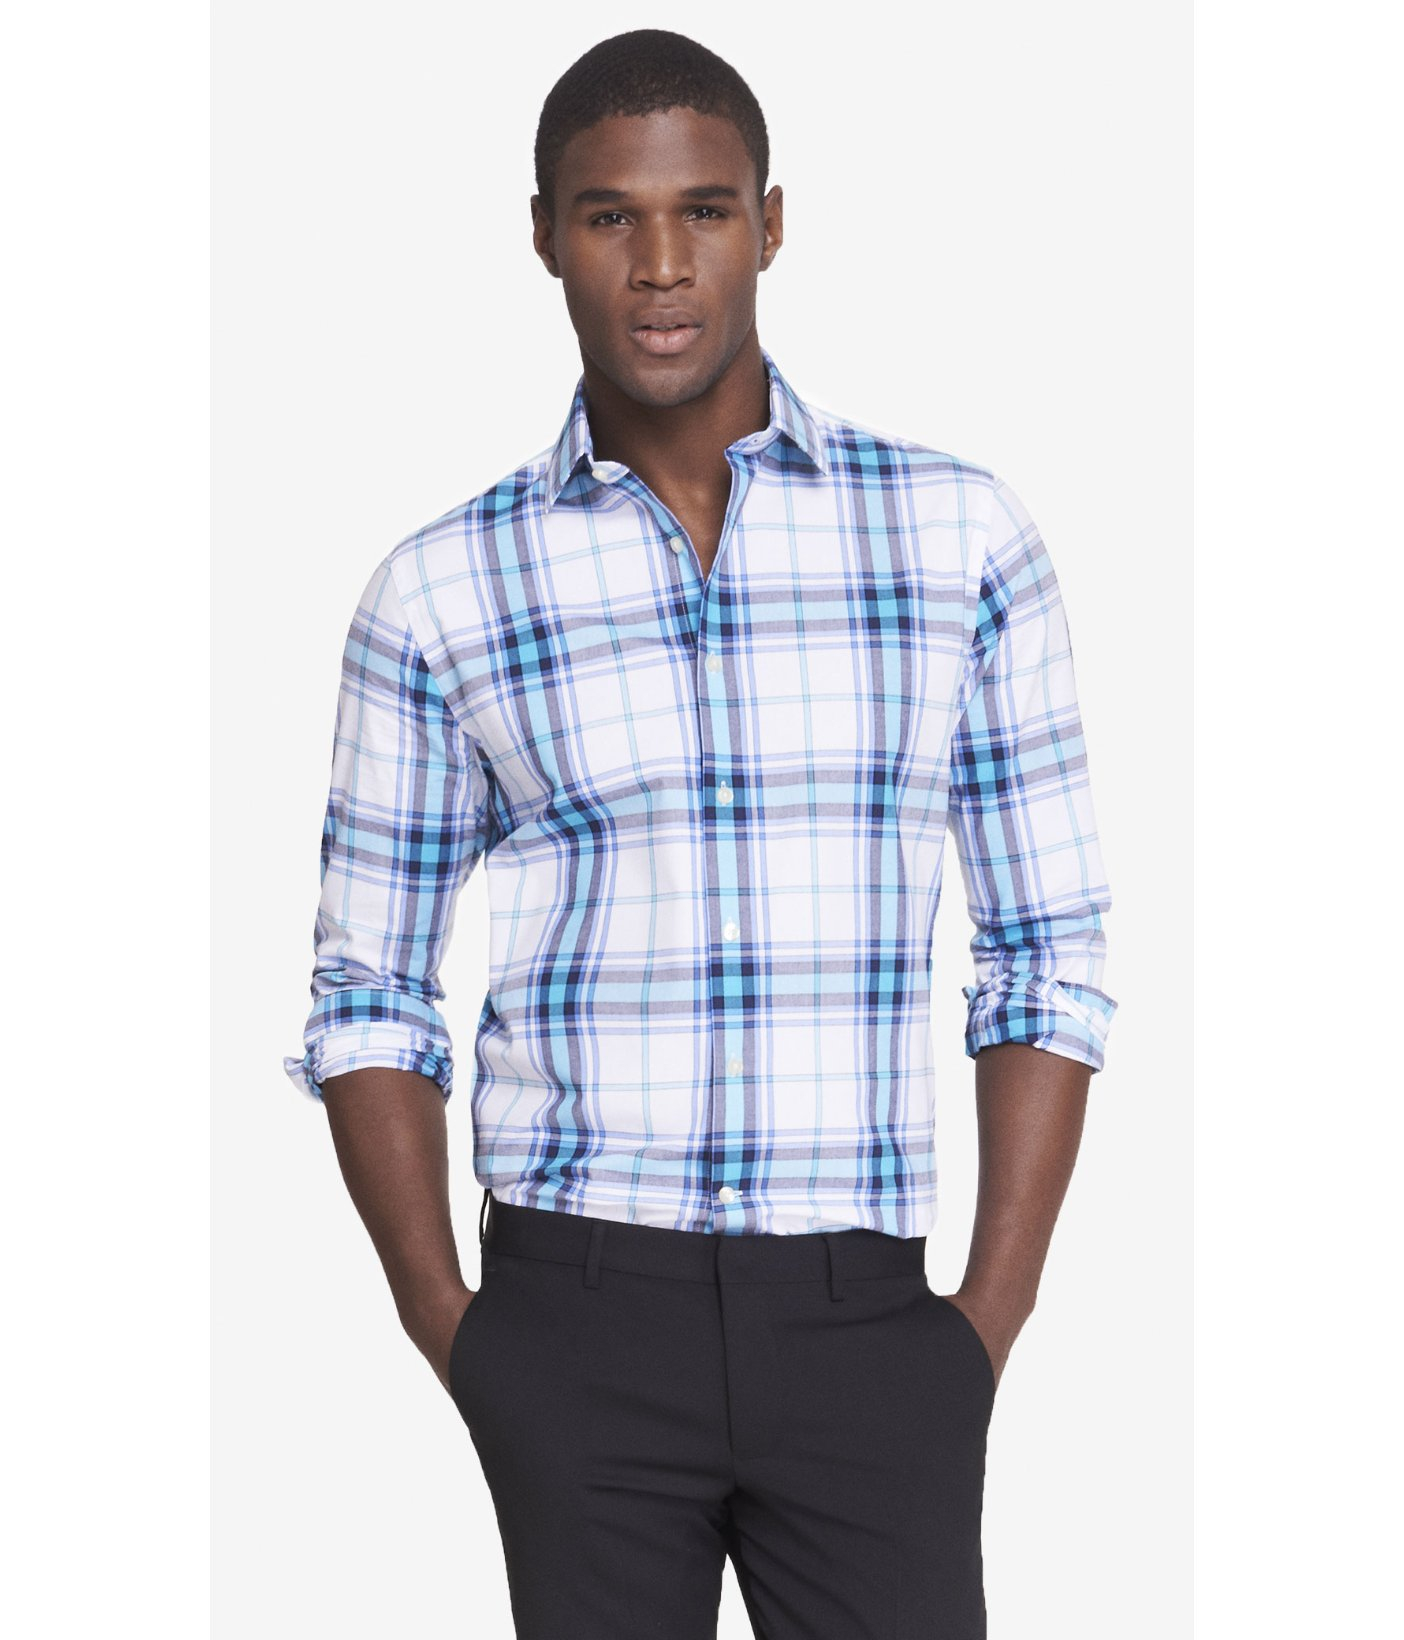 Choosing the right pattern for men's big and tall dress shirts While there are many things to consider when picking out a dress shirt, the pattern is one of the most important. While searching, you'll encounter plain, striped, and checkered dress shirt options.